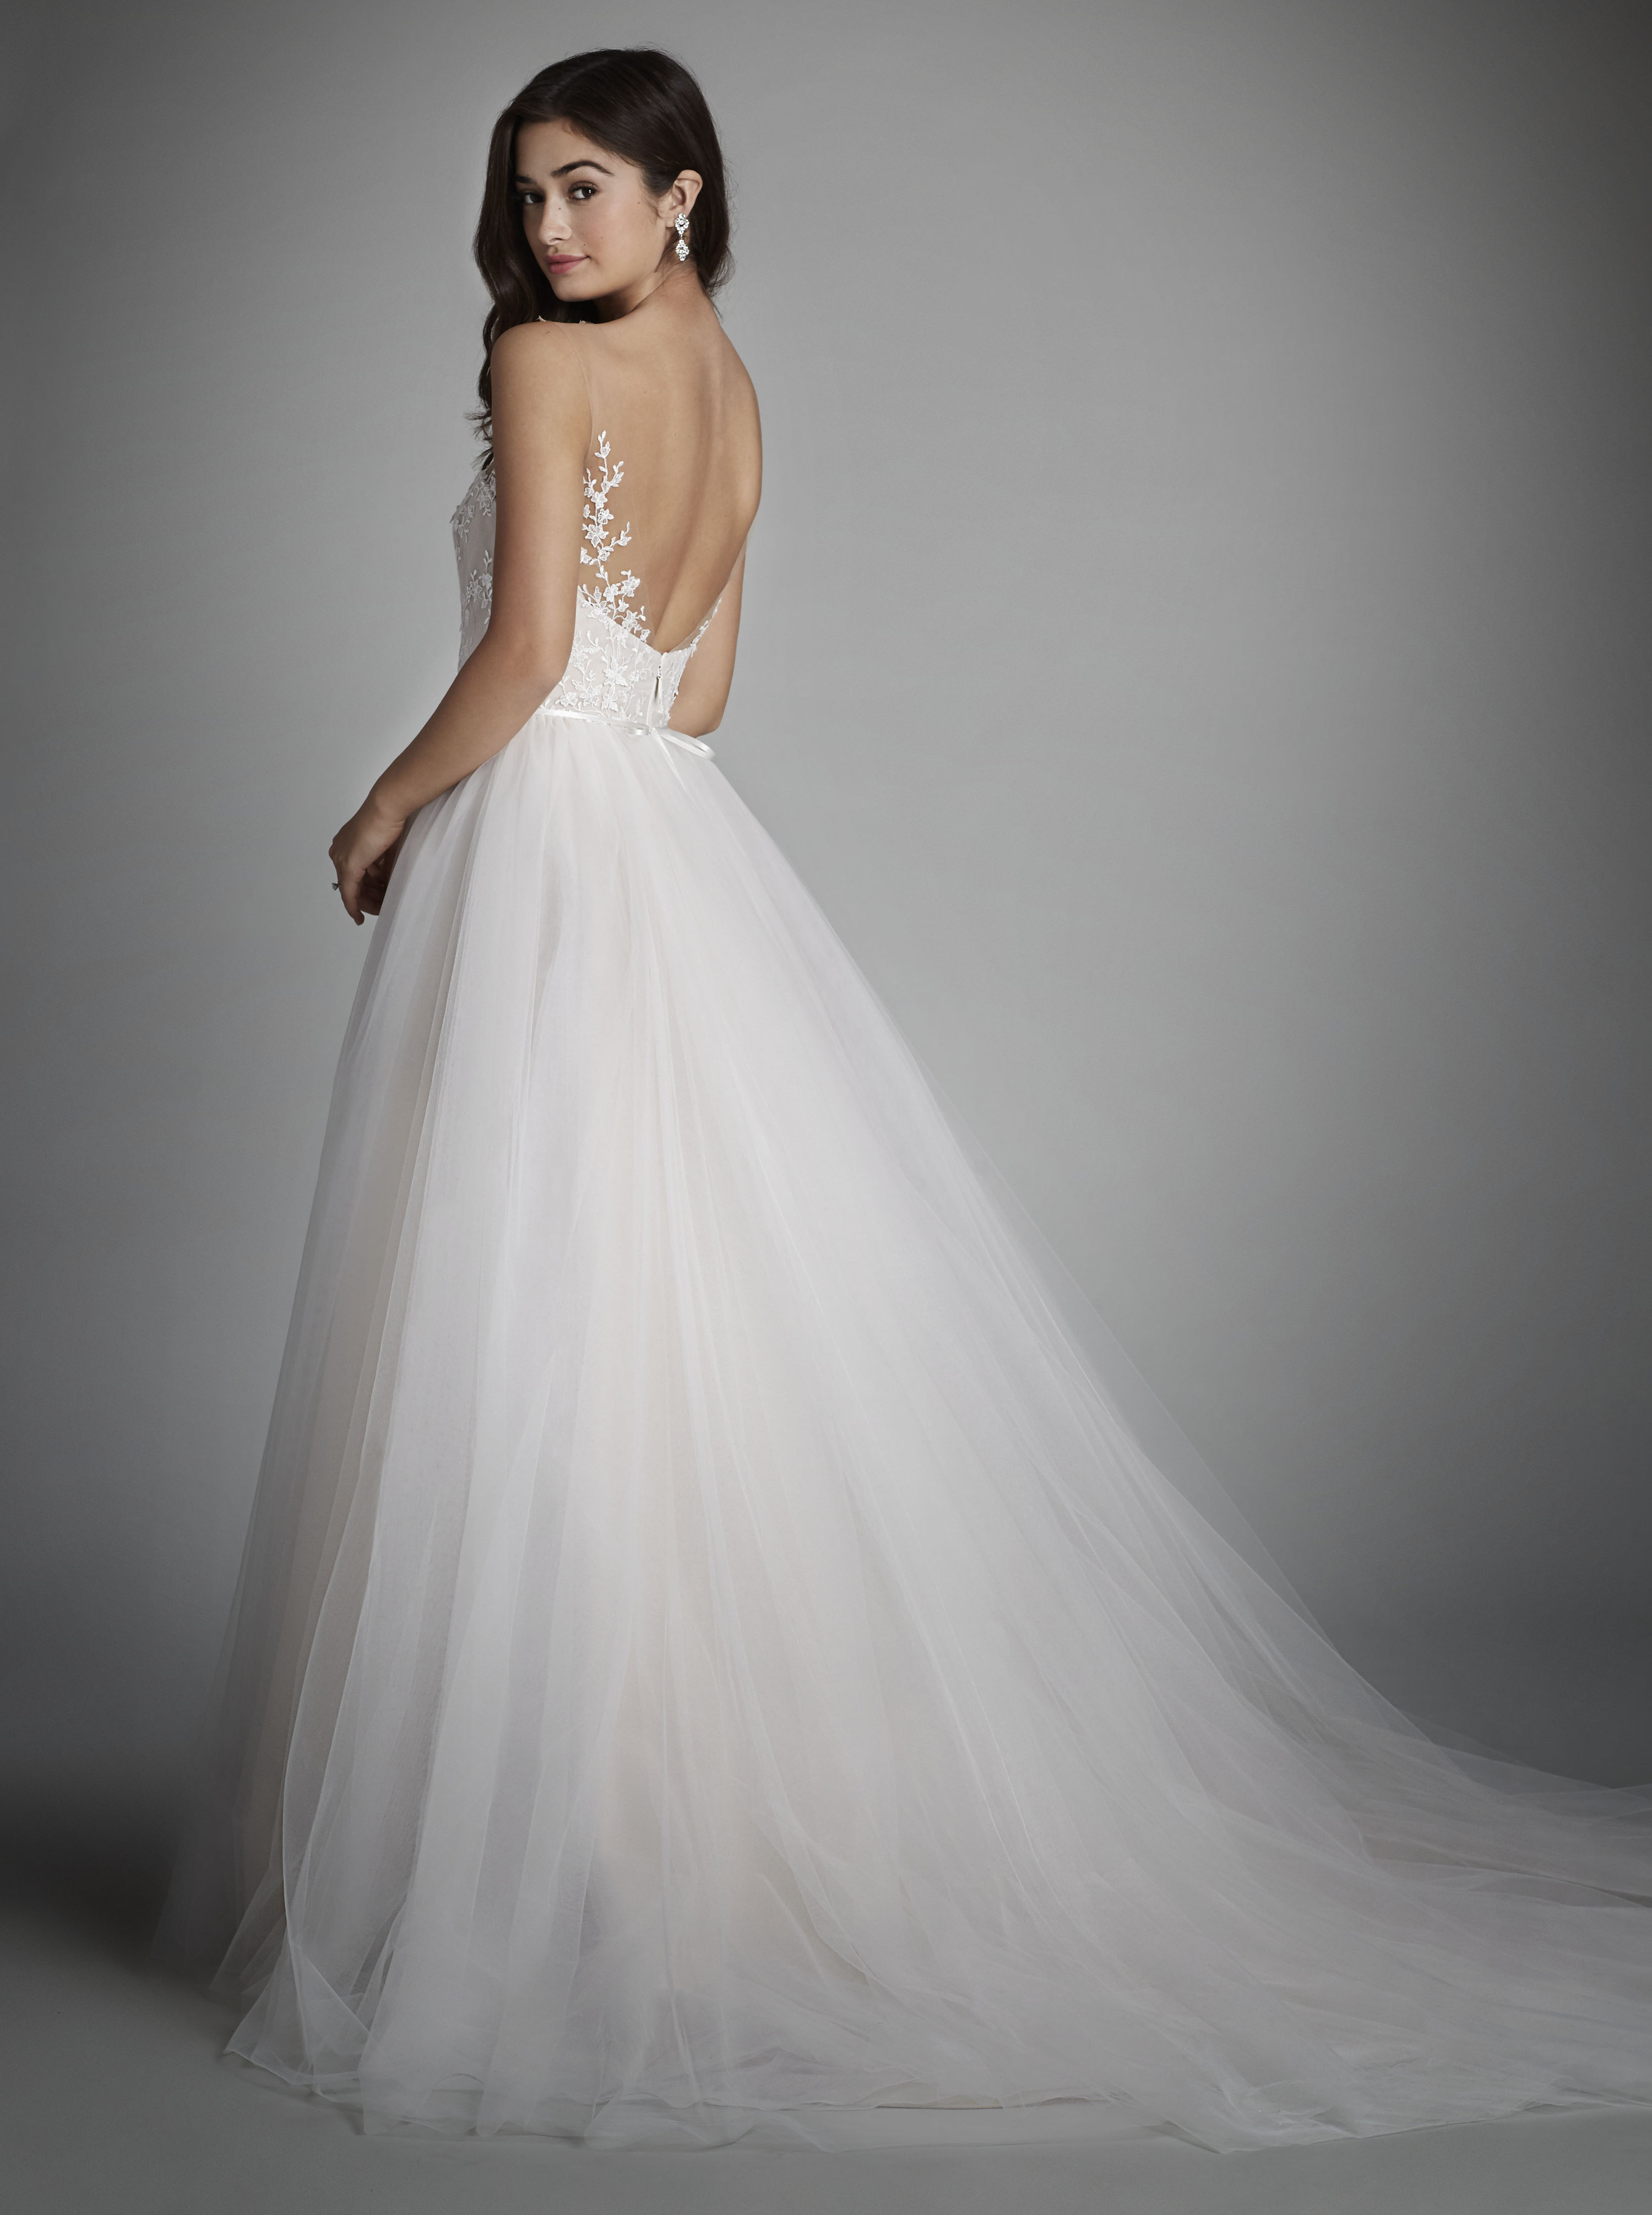 acb0eec7 Bridal Gowns and Wedding Dresses by JLM Couture - Style 9709